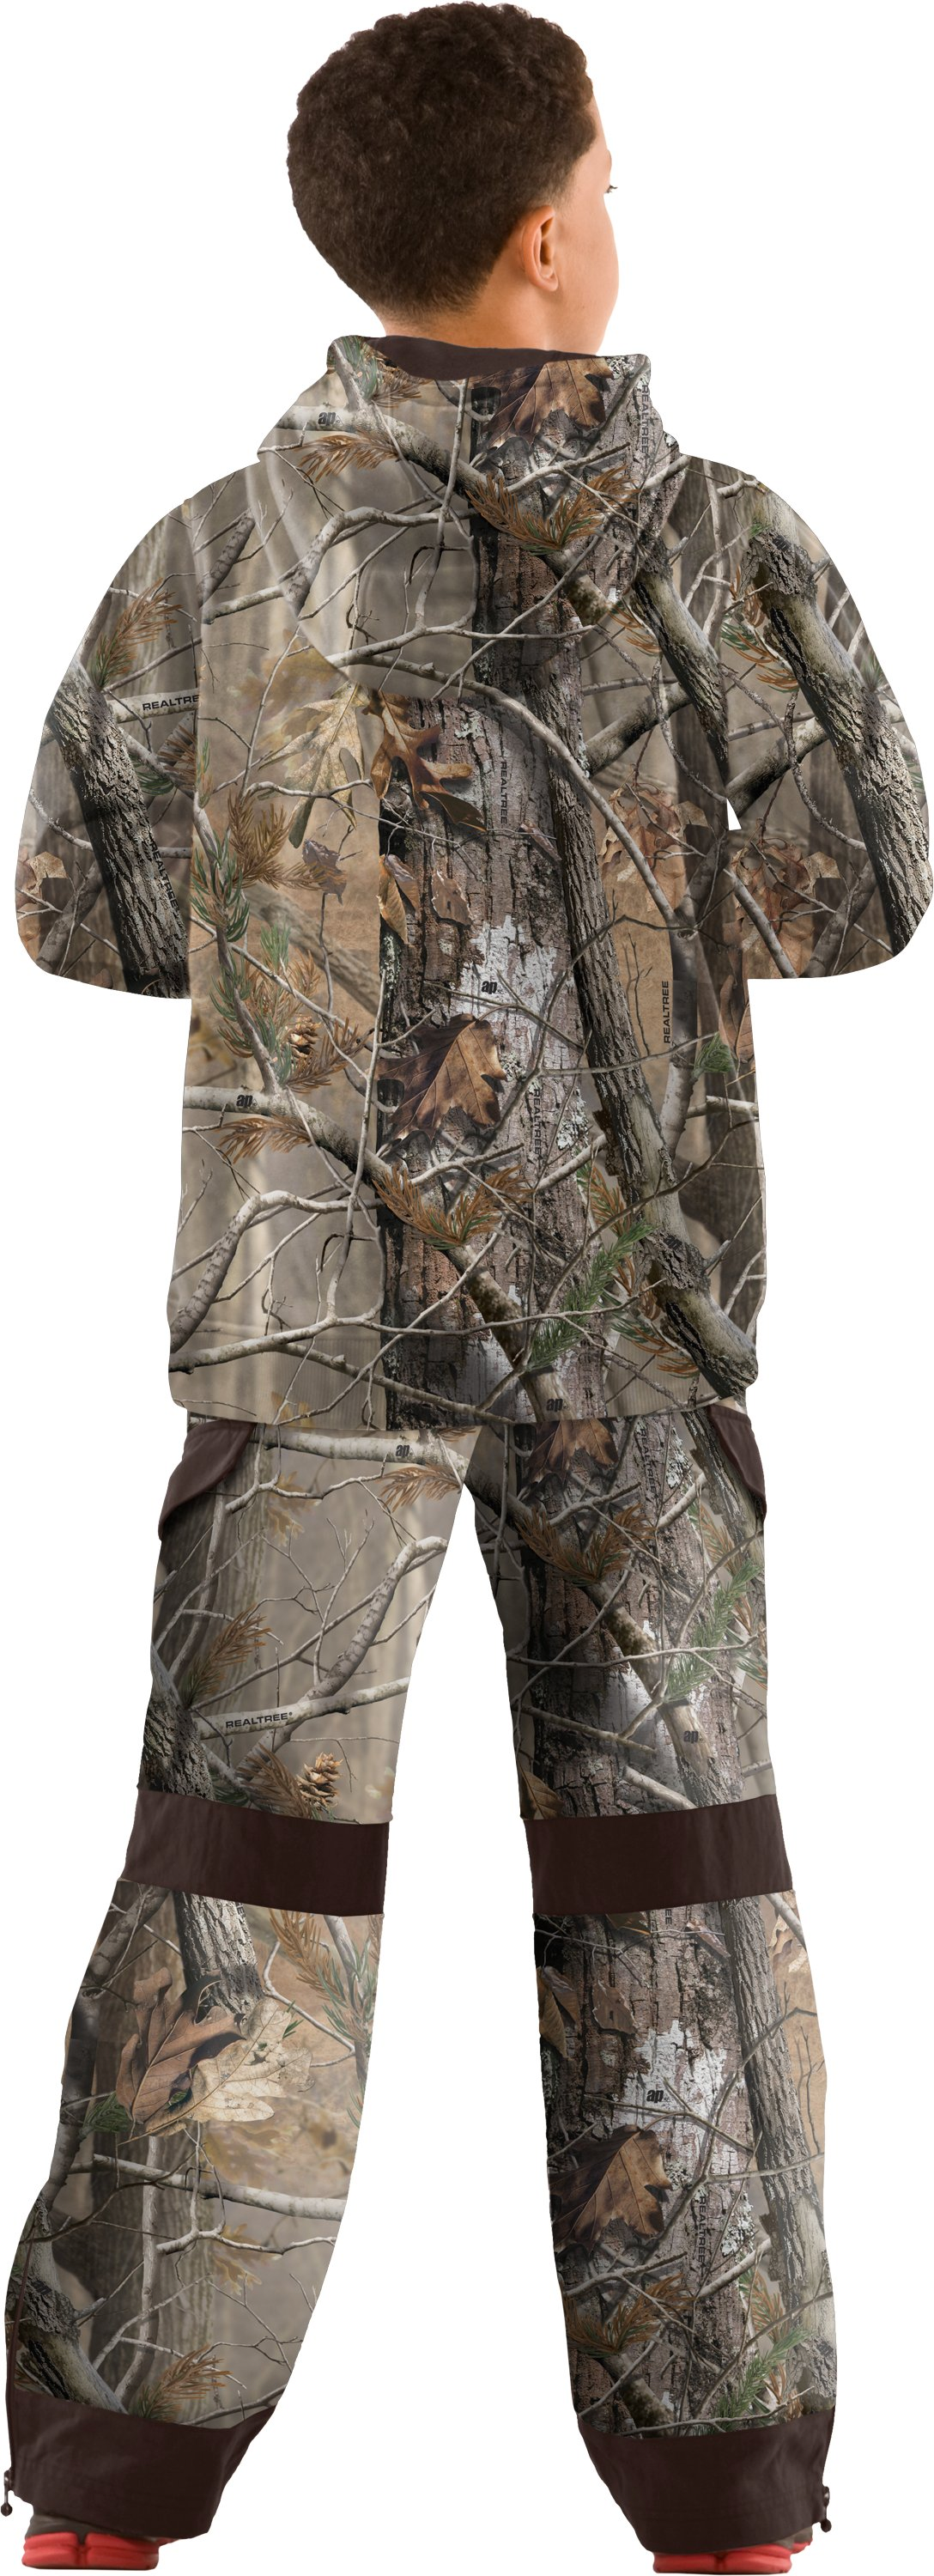 Boys' Ayton Camo Hunting Pants, Realtree AP, Back